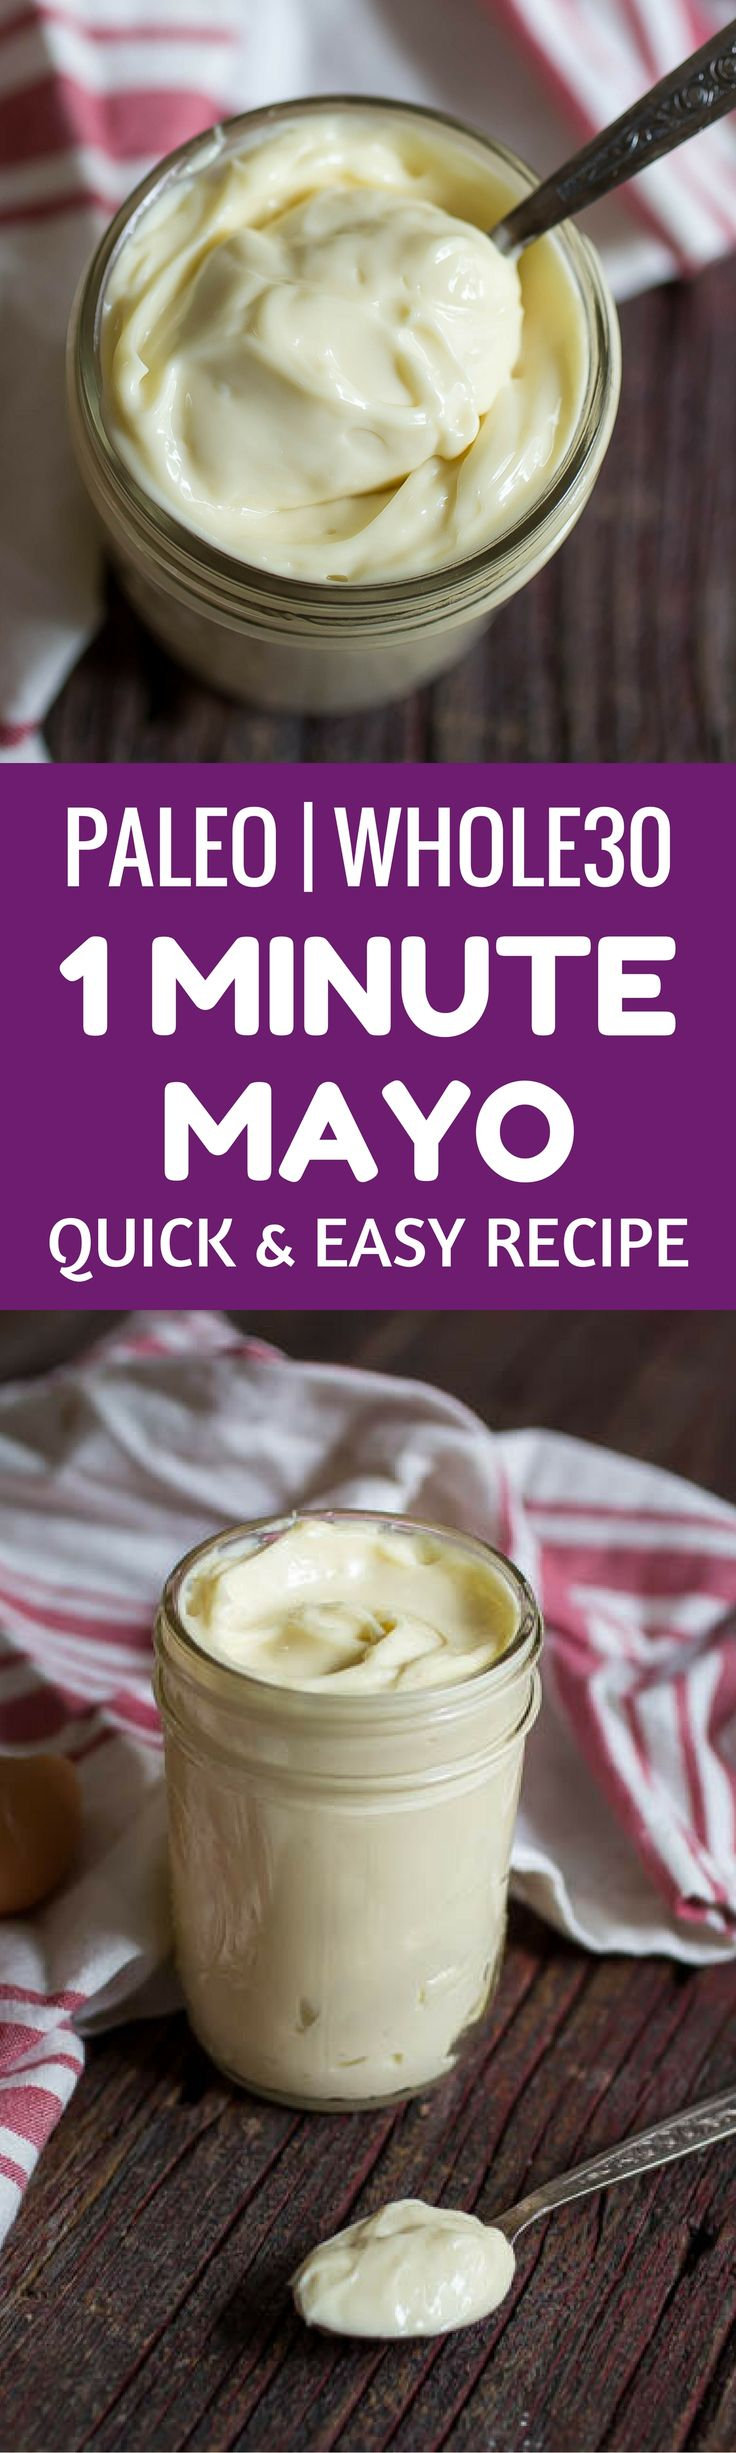 Making homemade paleo mayonnaise in 1 minute or less is so quick and easy with the right ingredients and tools. Check out this easy recipe & how-to video!